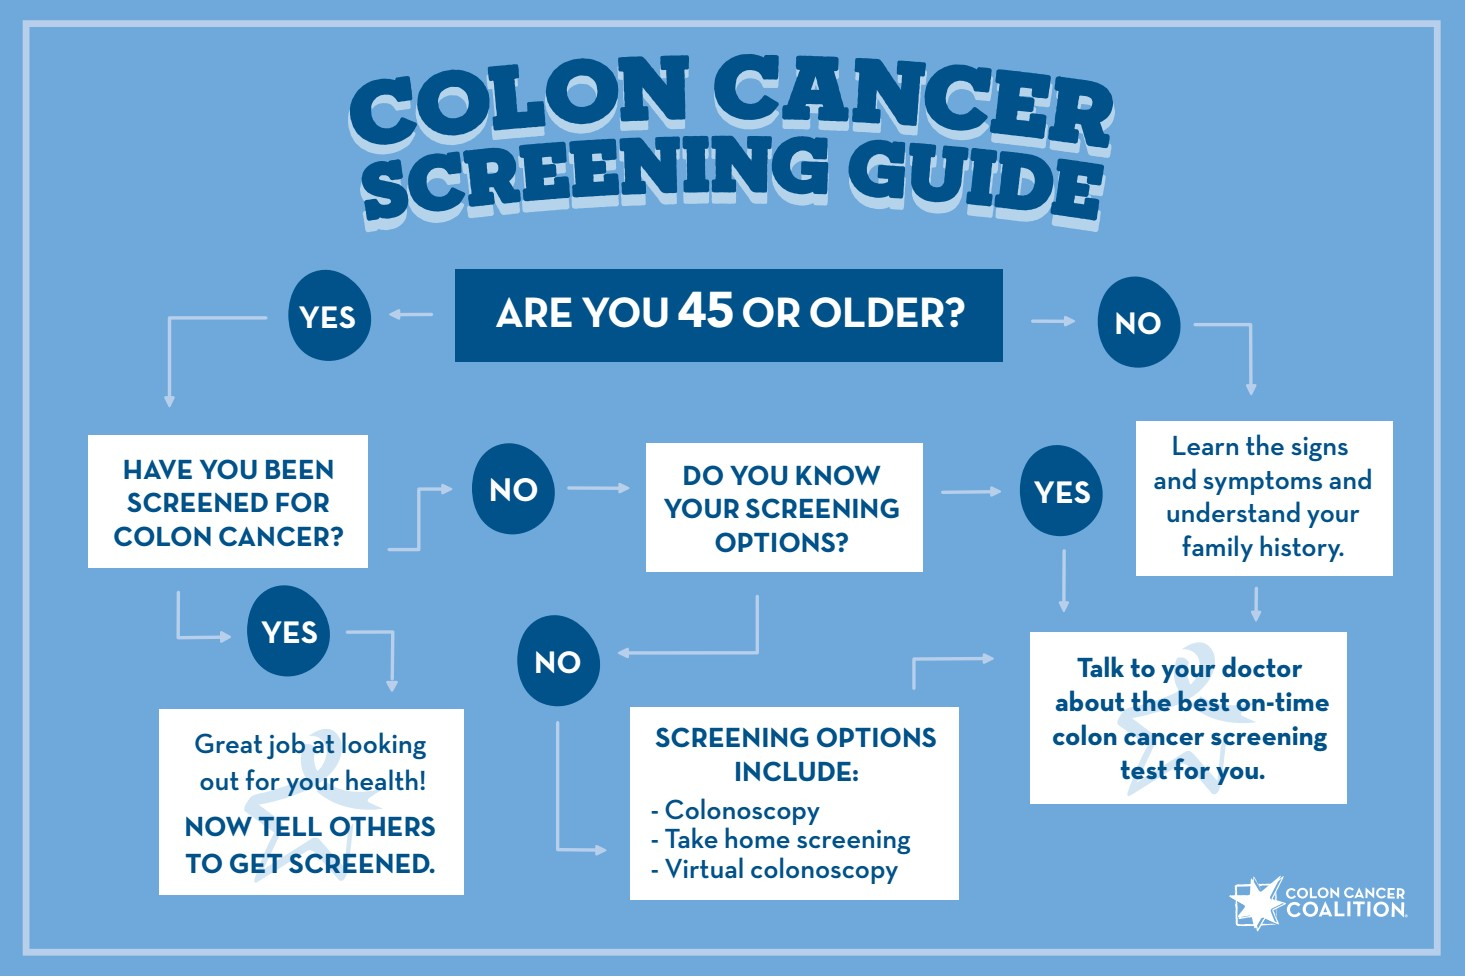 Screening Guide Colon Cancer Coalition